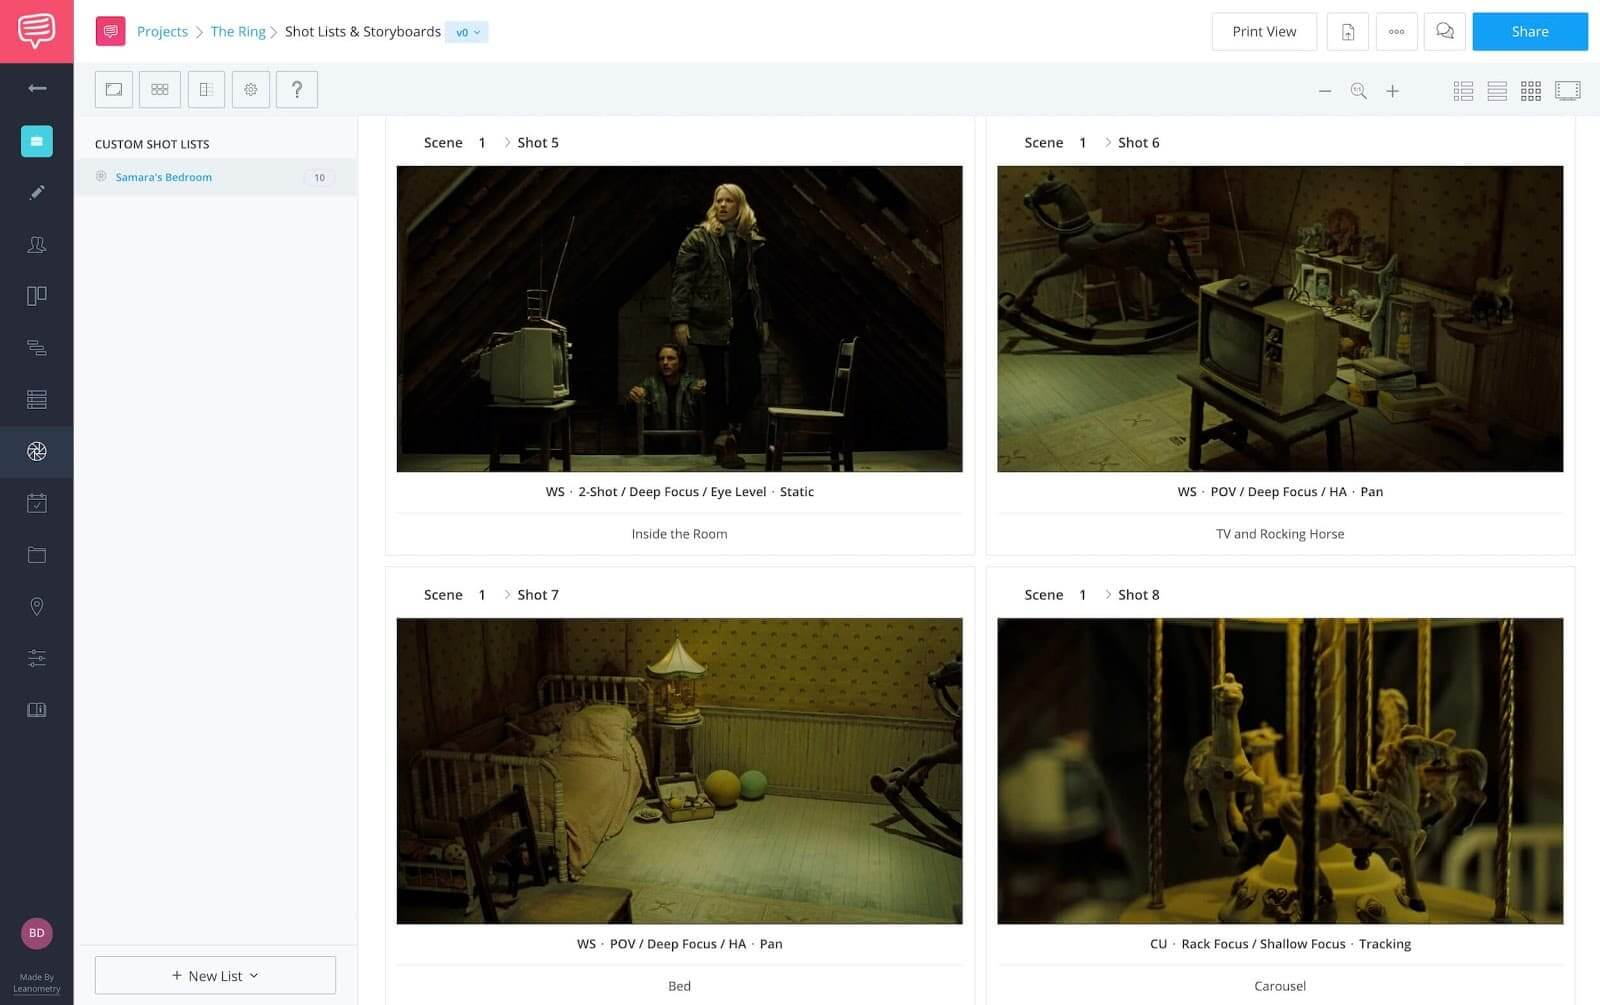 Elements of Suspense - Samara's Bedroom in The Ring - StudioBinder Storyboard Software and Template